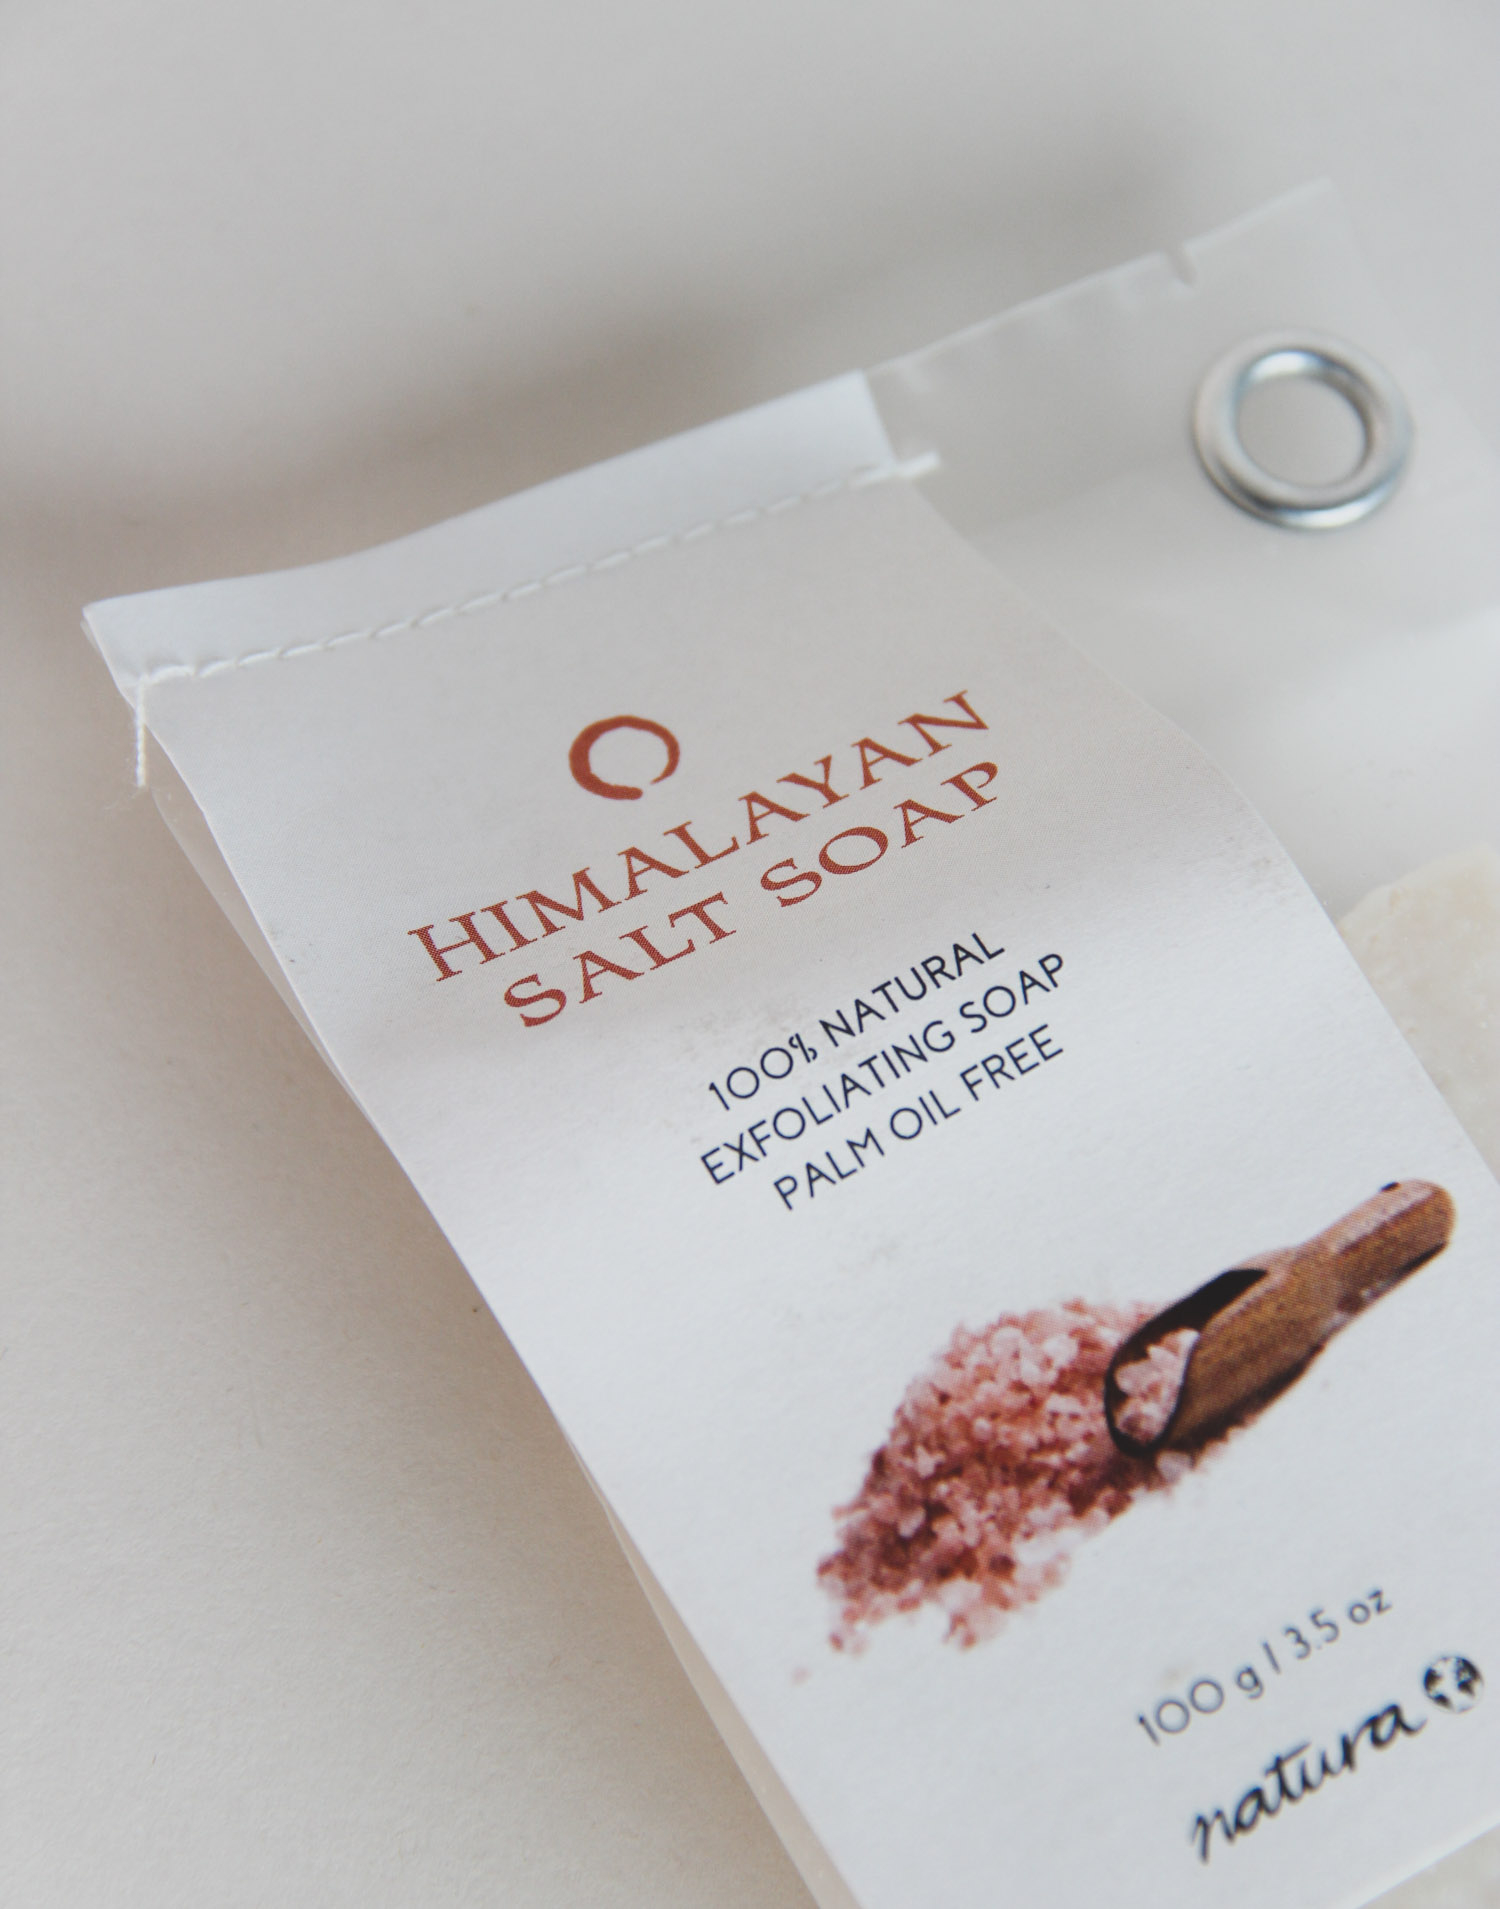 Himalayan salt hand soap